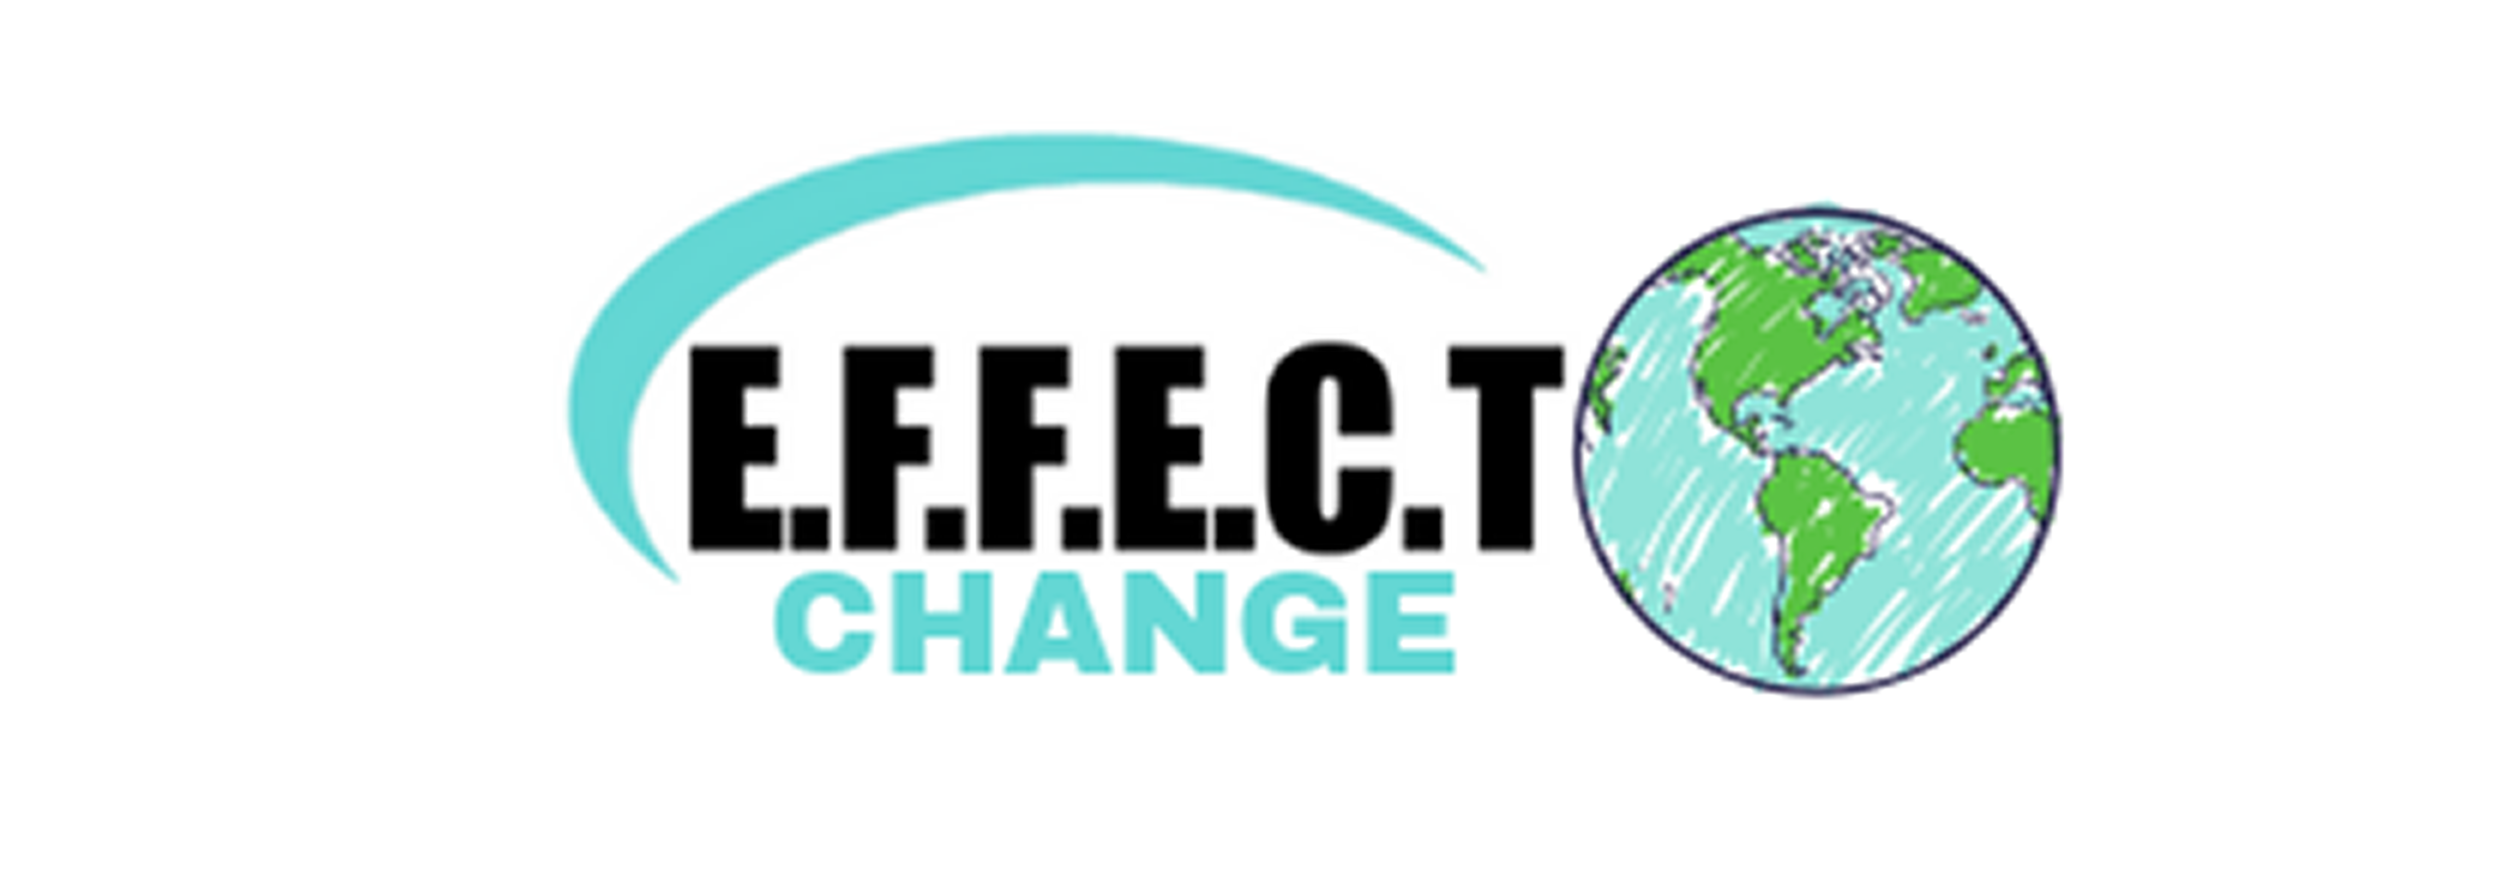 Effect_Change.png